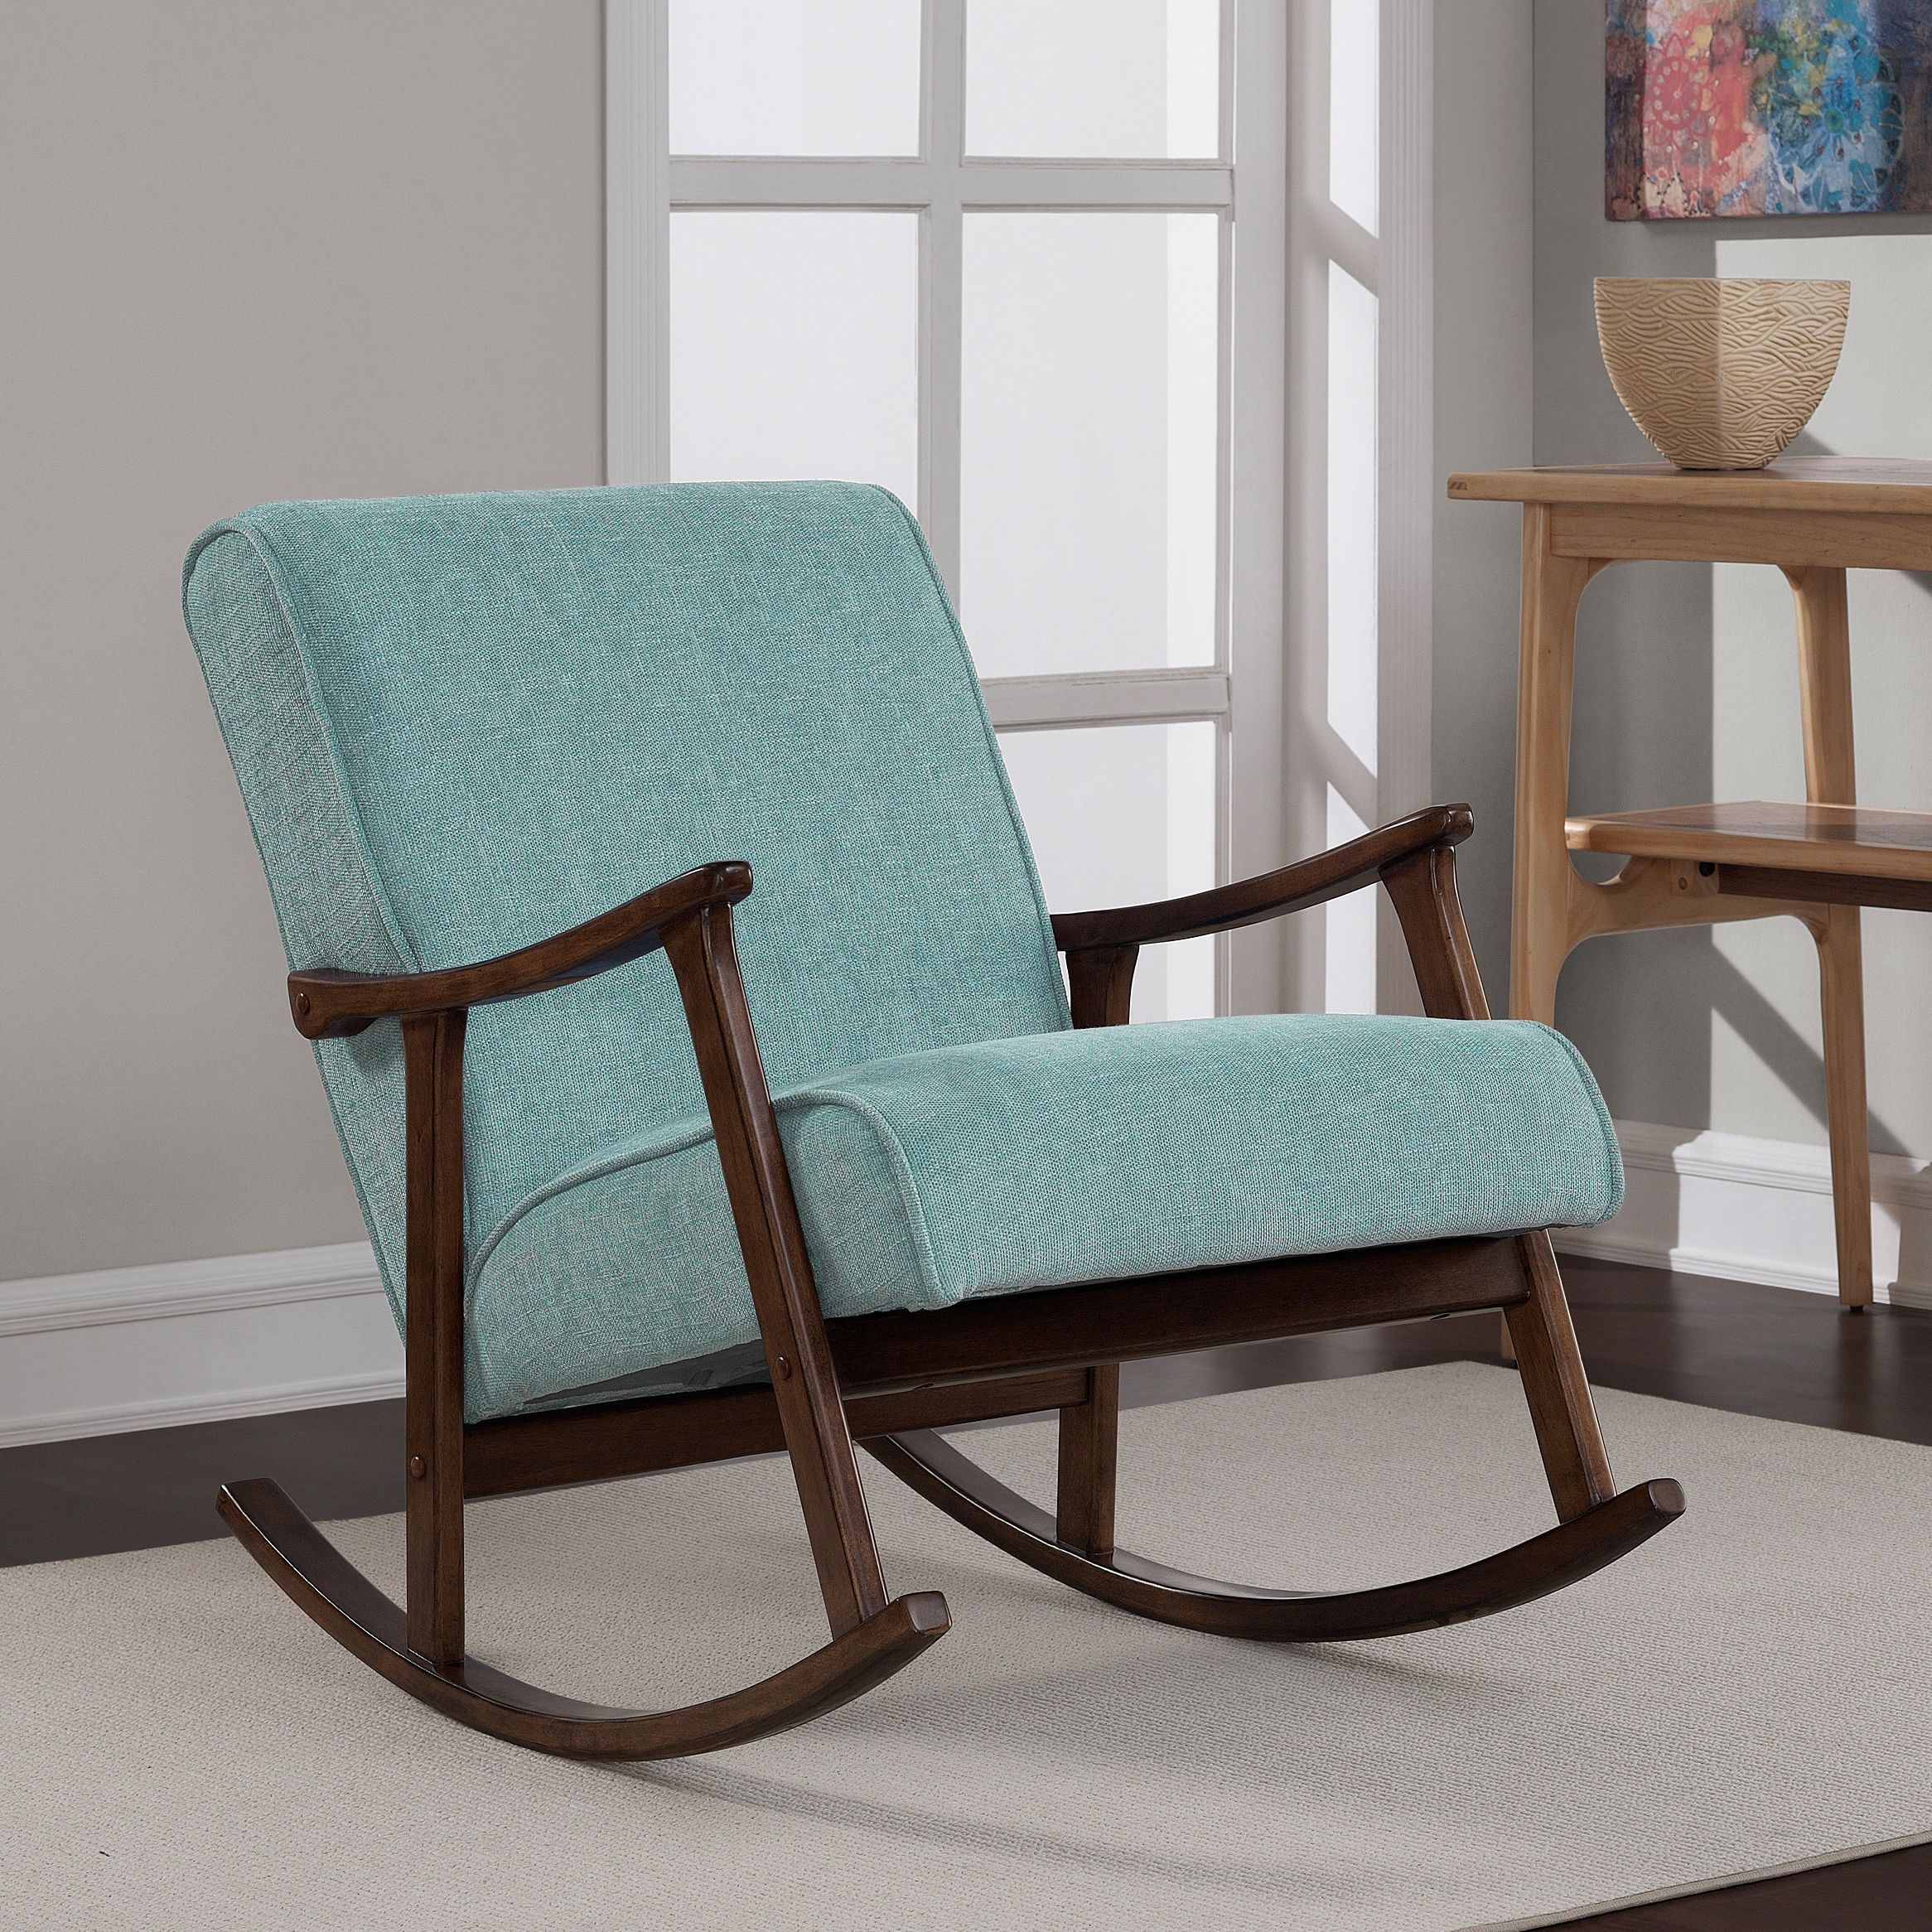 Upholstered rocking chairs aqua blue fabric mid century wooden rocker chair  blue fabric